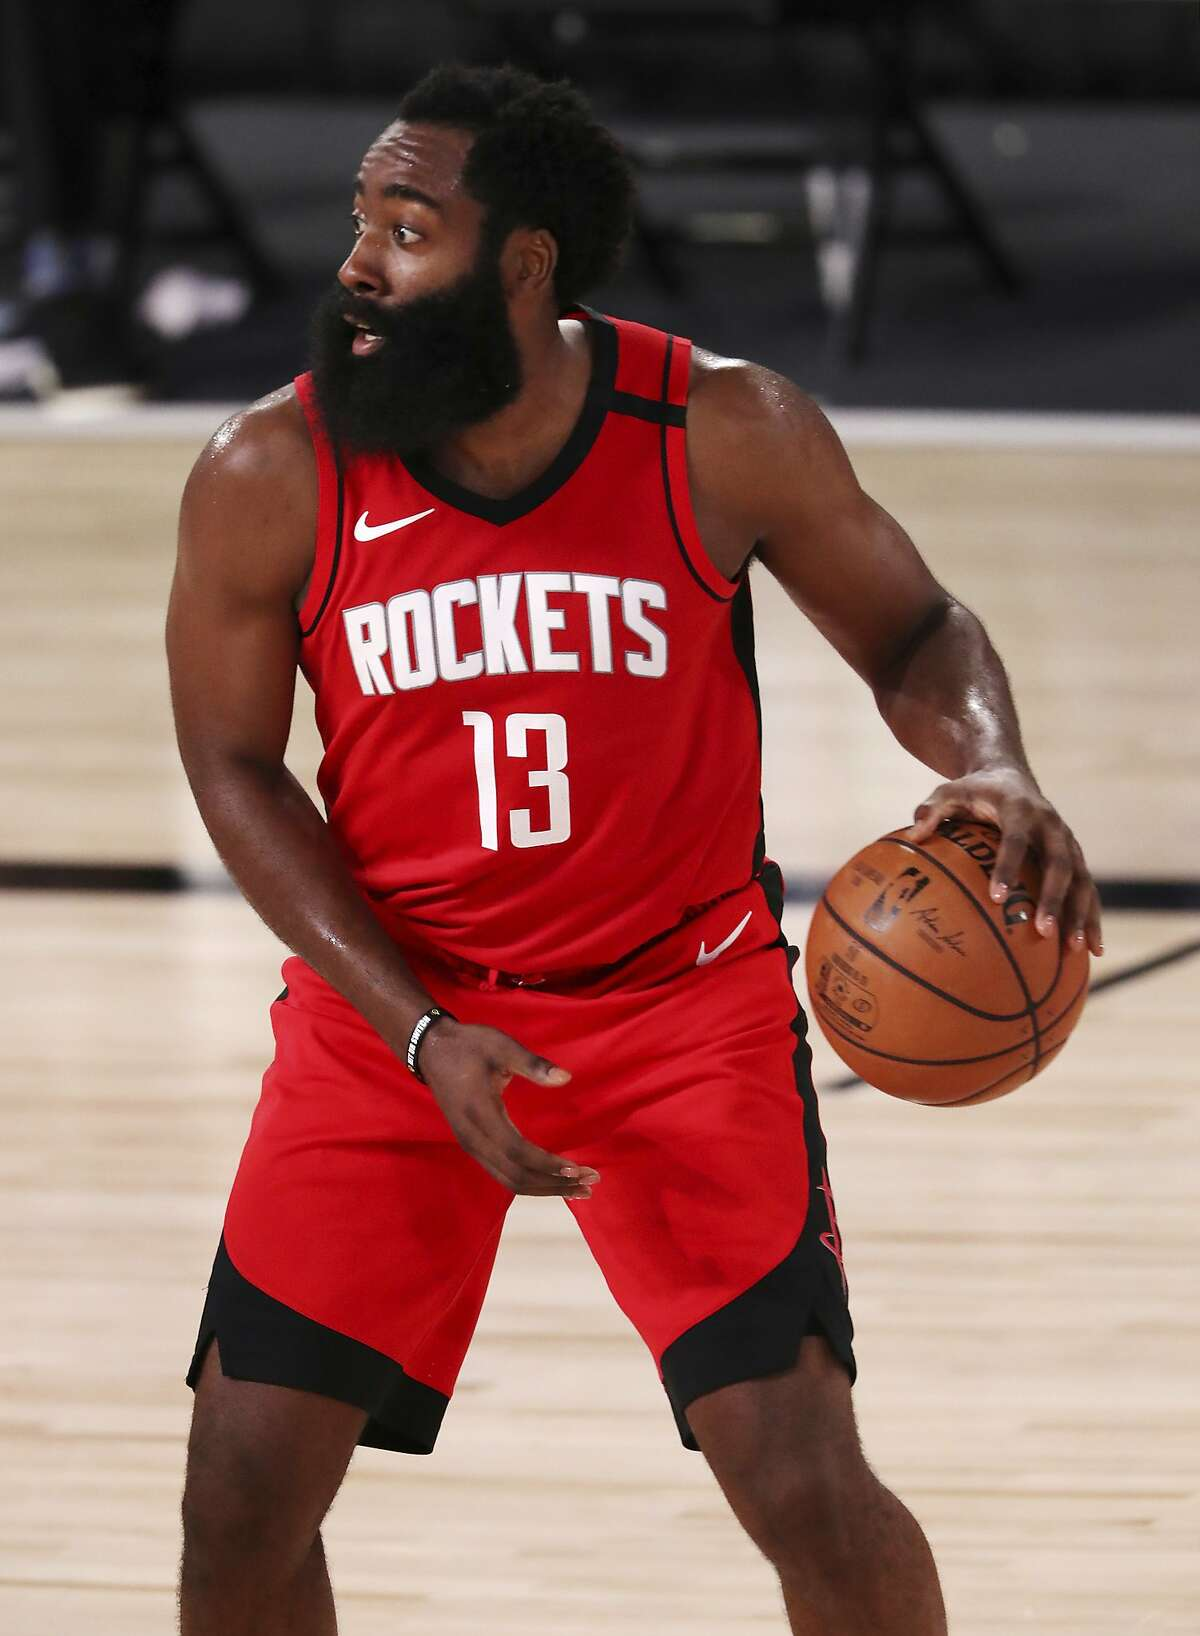 Houston's James Harden passed Calvin Murphy to become the second-leading scorer in franchise history behind Hakeem Olajuwon.